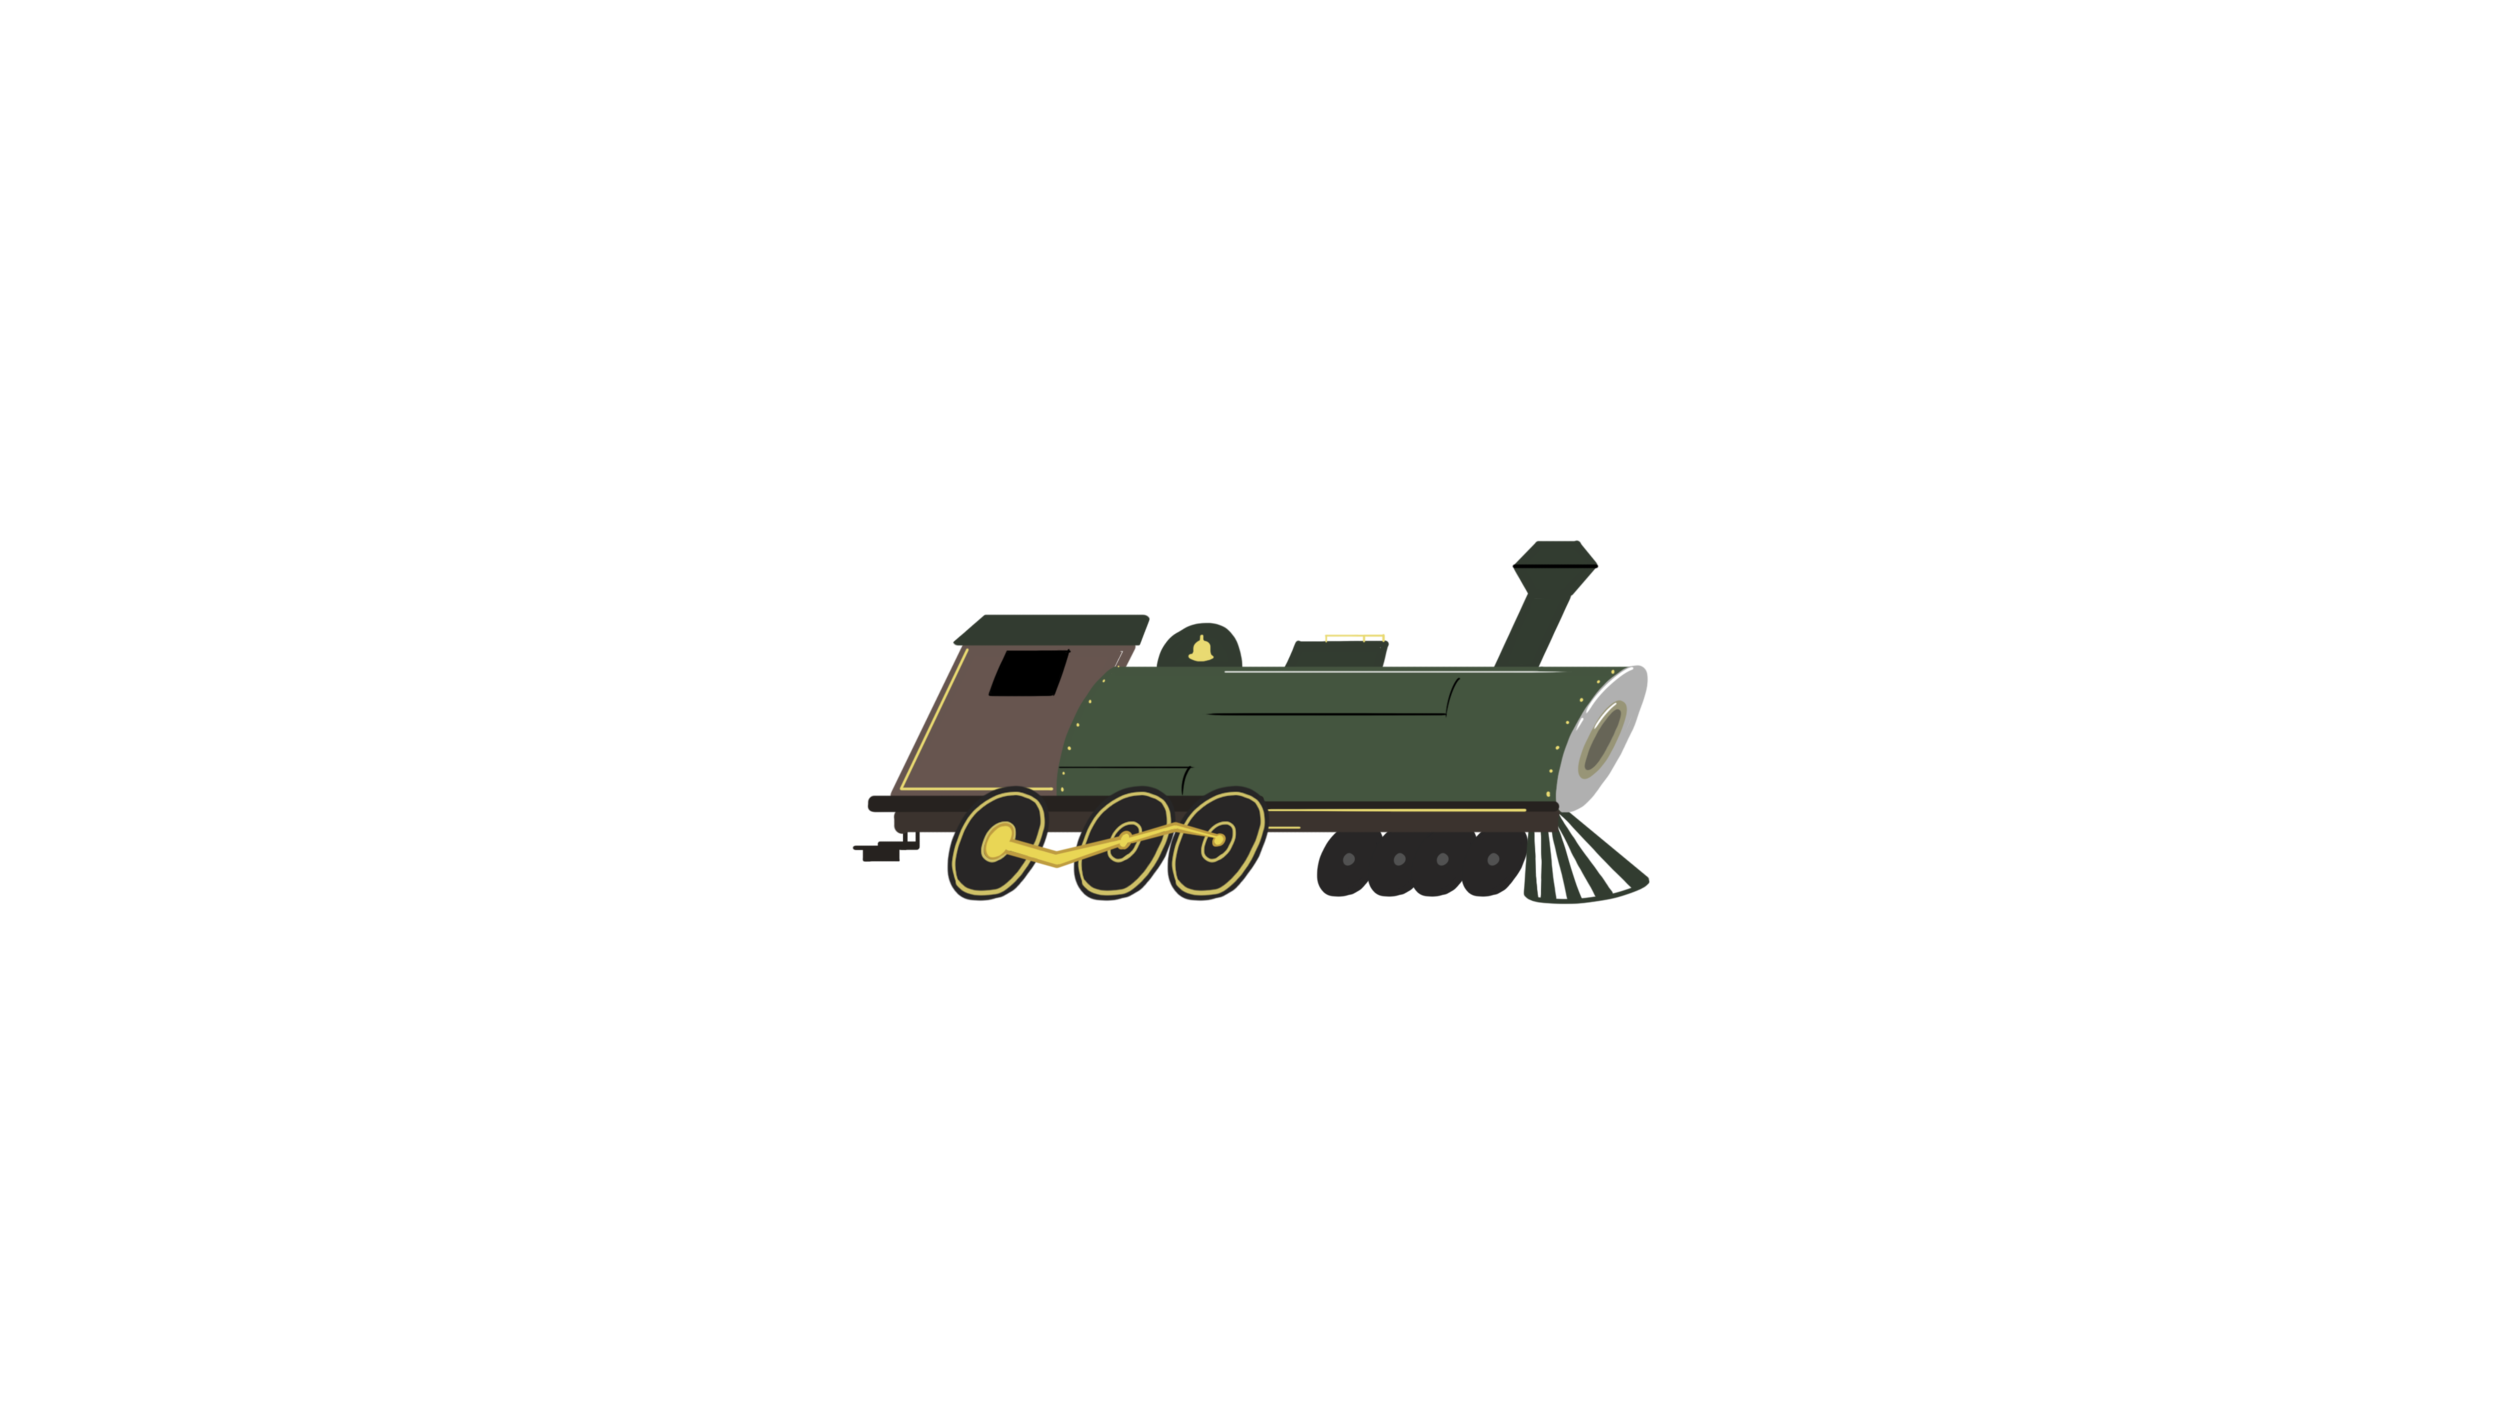 TrainEngine_Profile.png